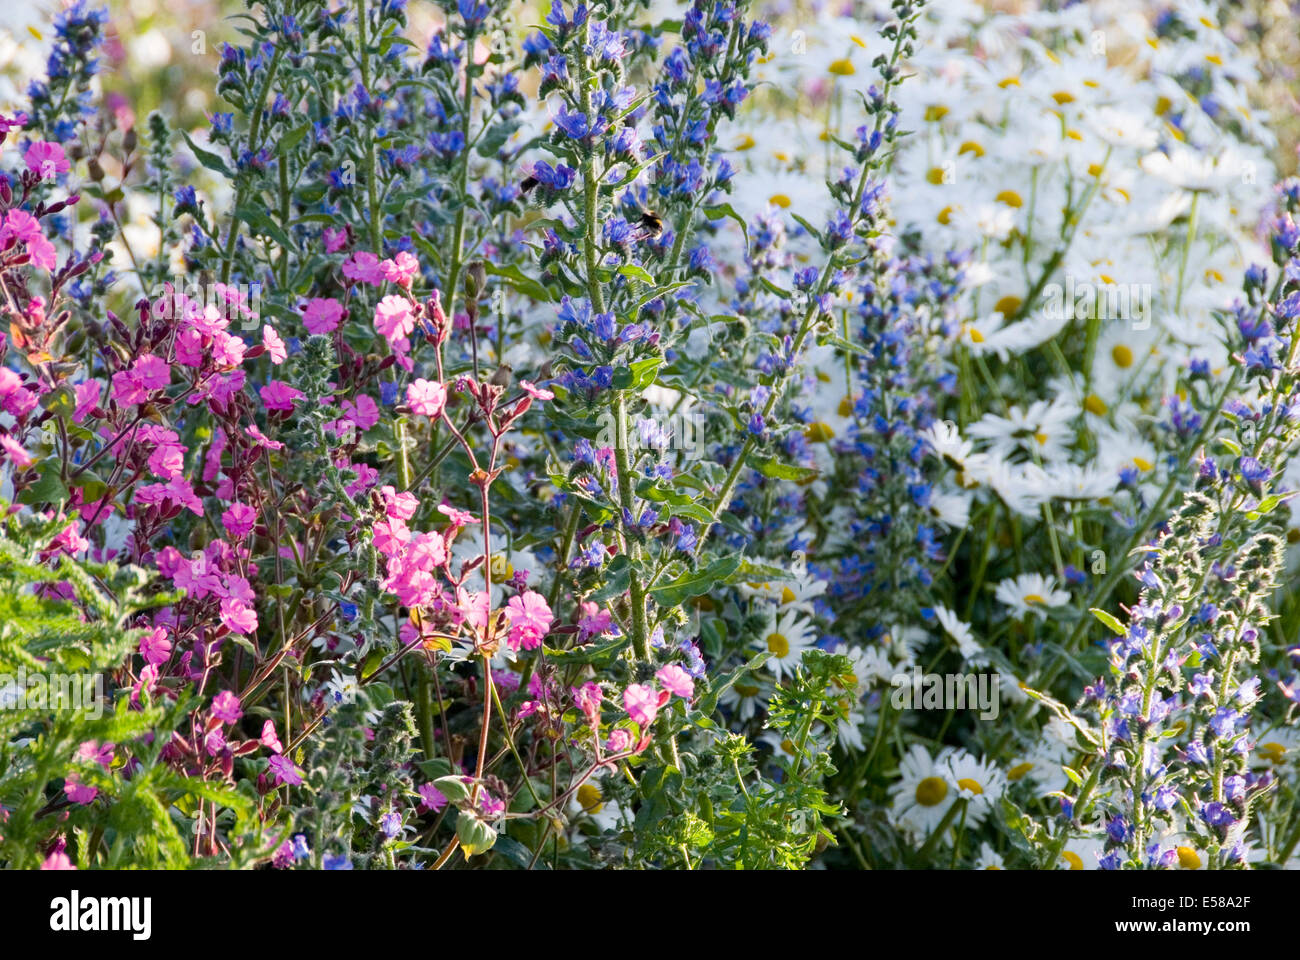 Pink blue and white flowers in a wild flower border or urban meadow pink blue and white flowers in a wild flower border or urban meadow by pictoral meadows ltd manor lodge sheffield uk mightylinksfo